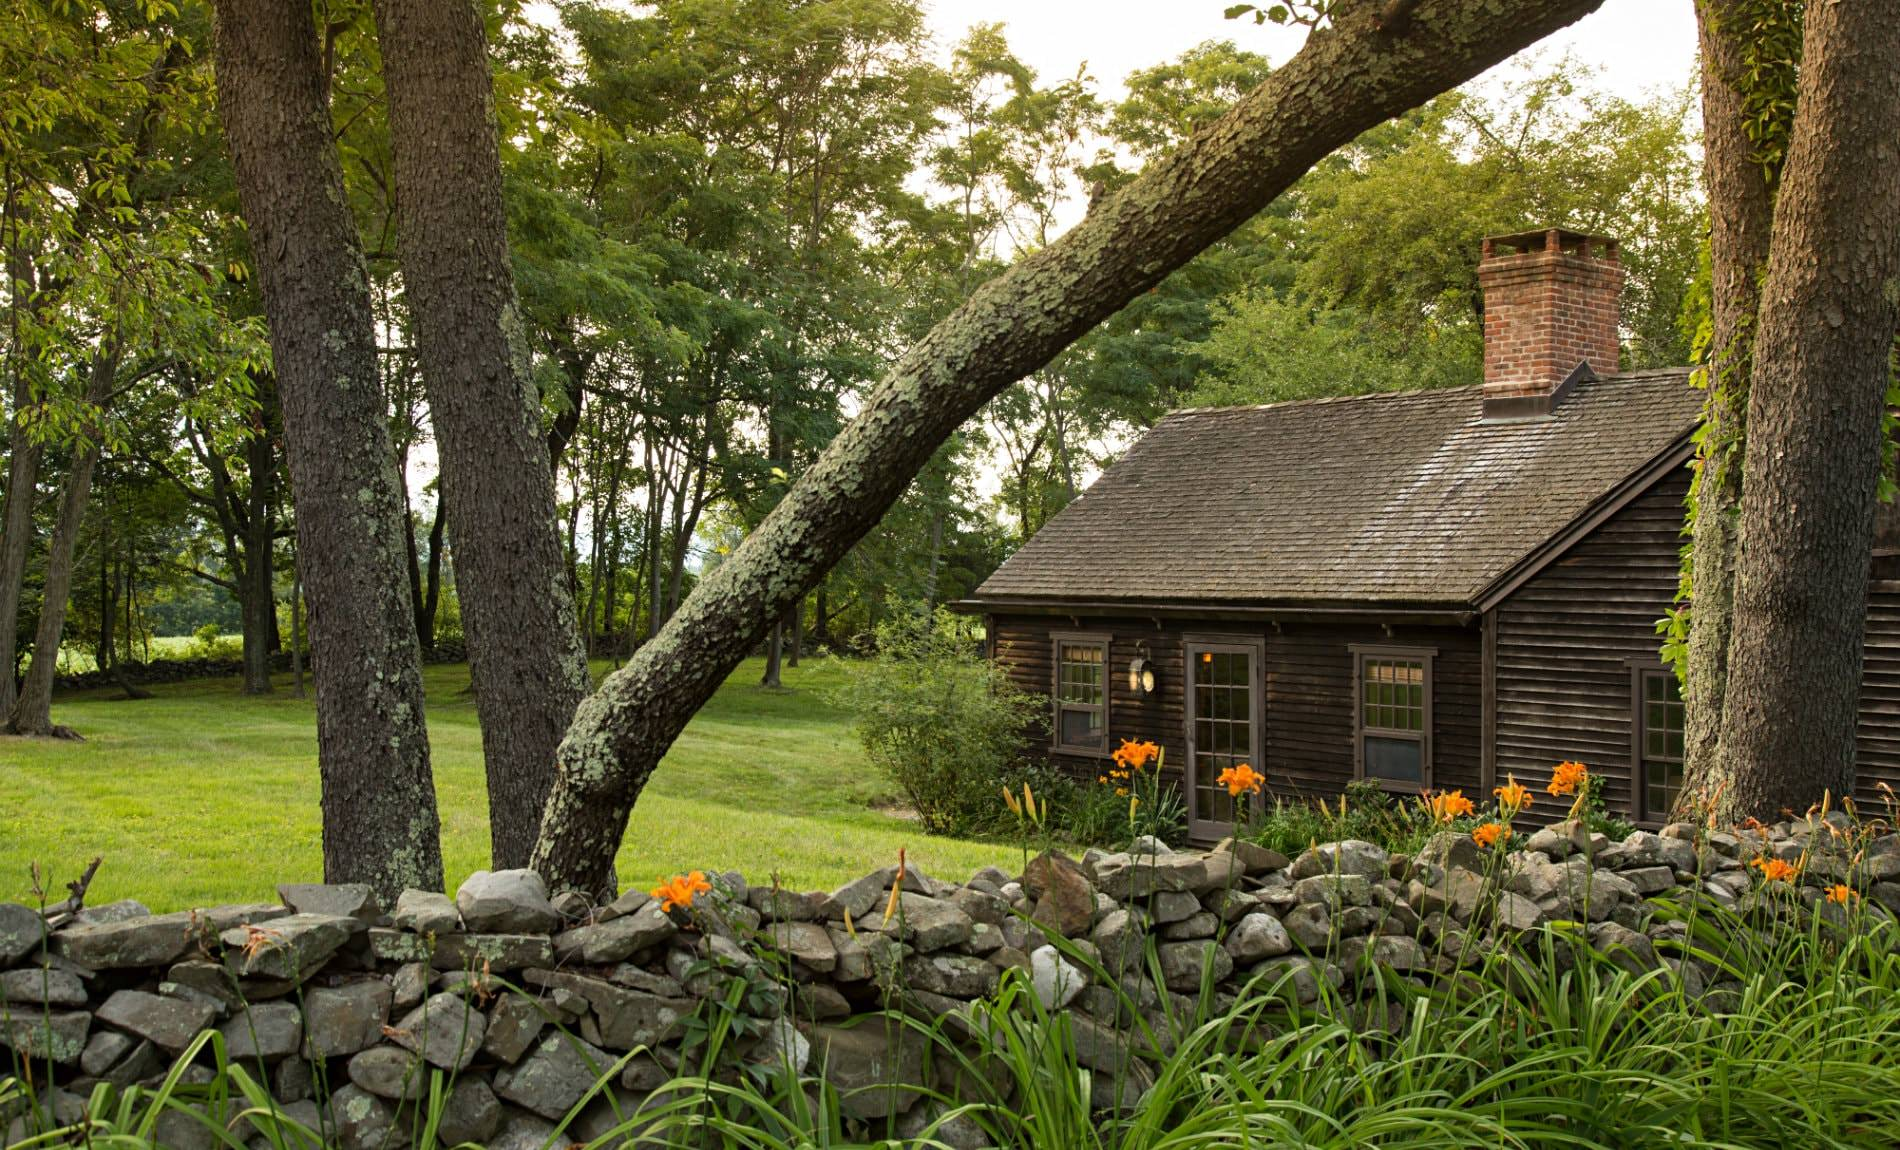 Rustic brown cabin surrounded by green grass, a gray stone wall and trees